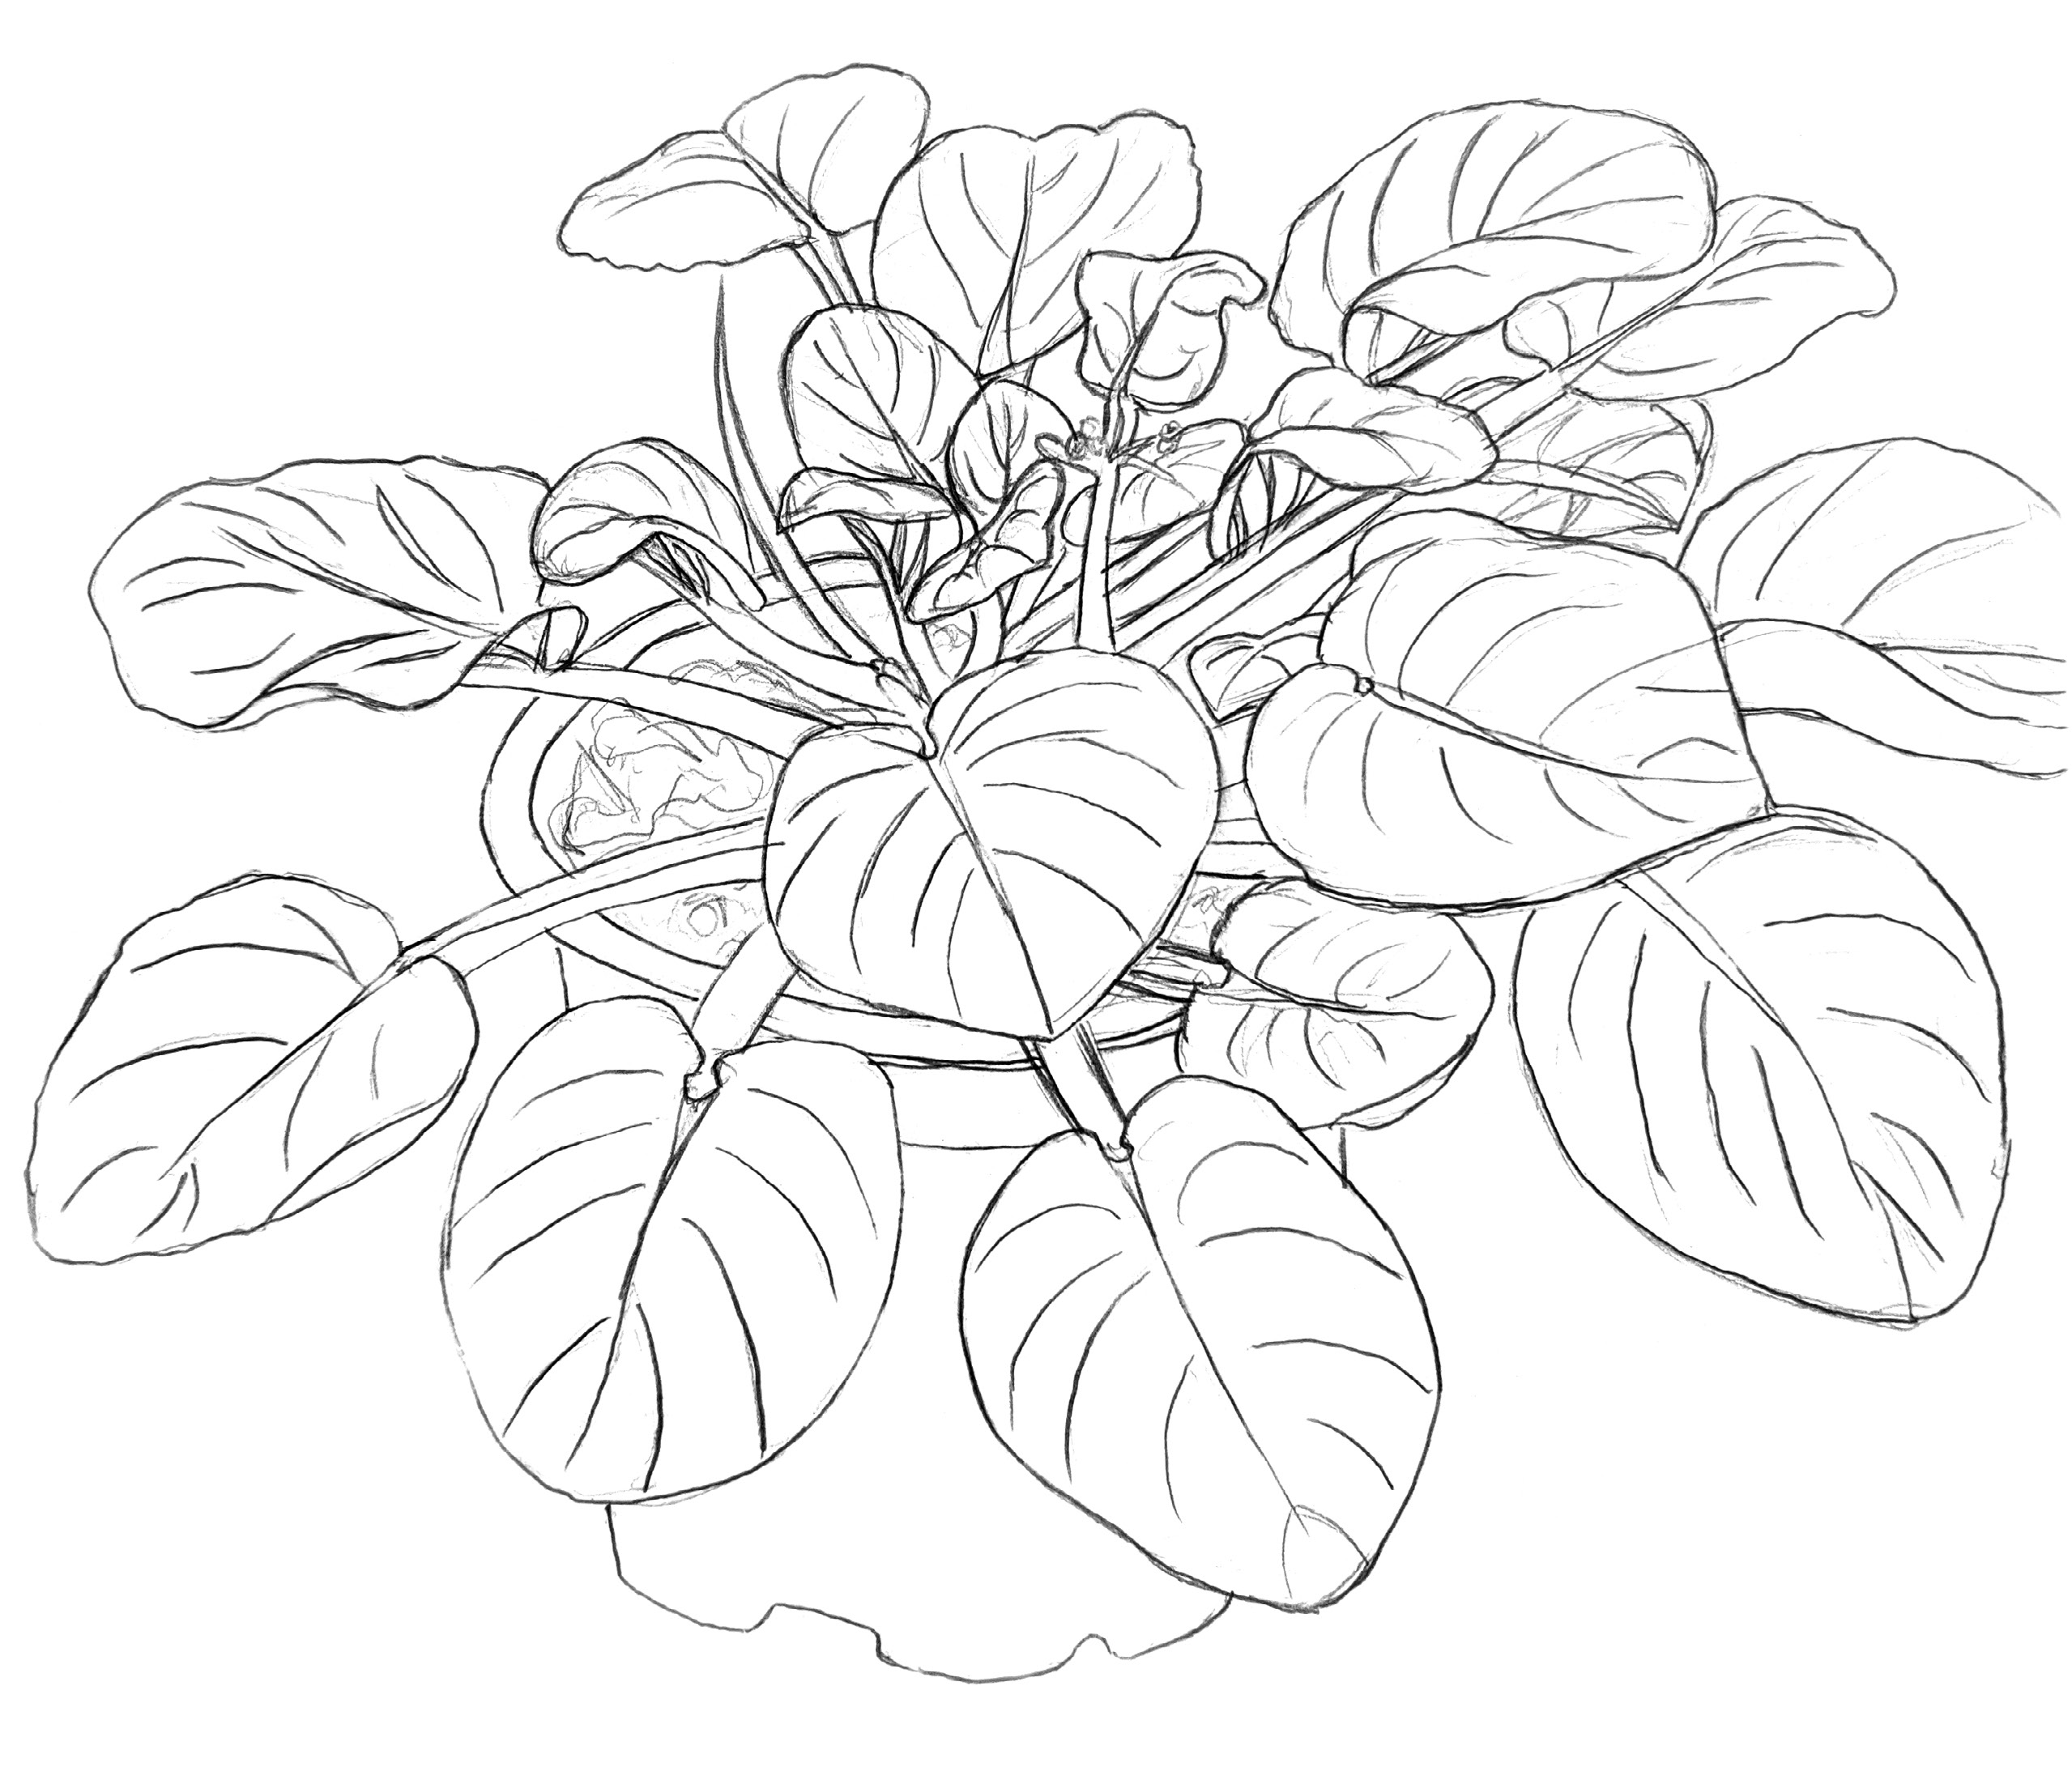 A sketch of a plant